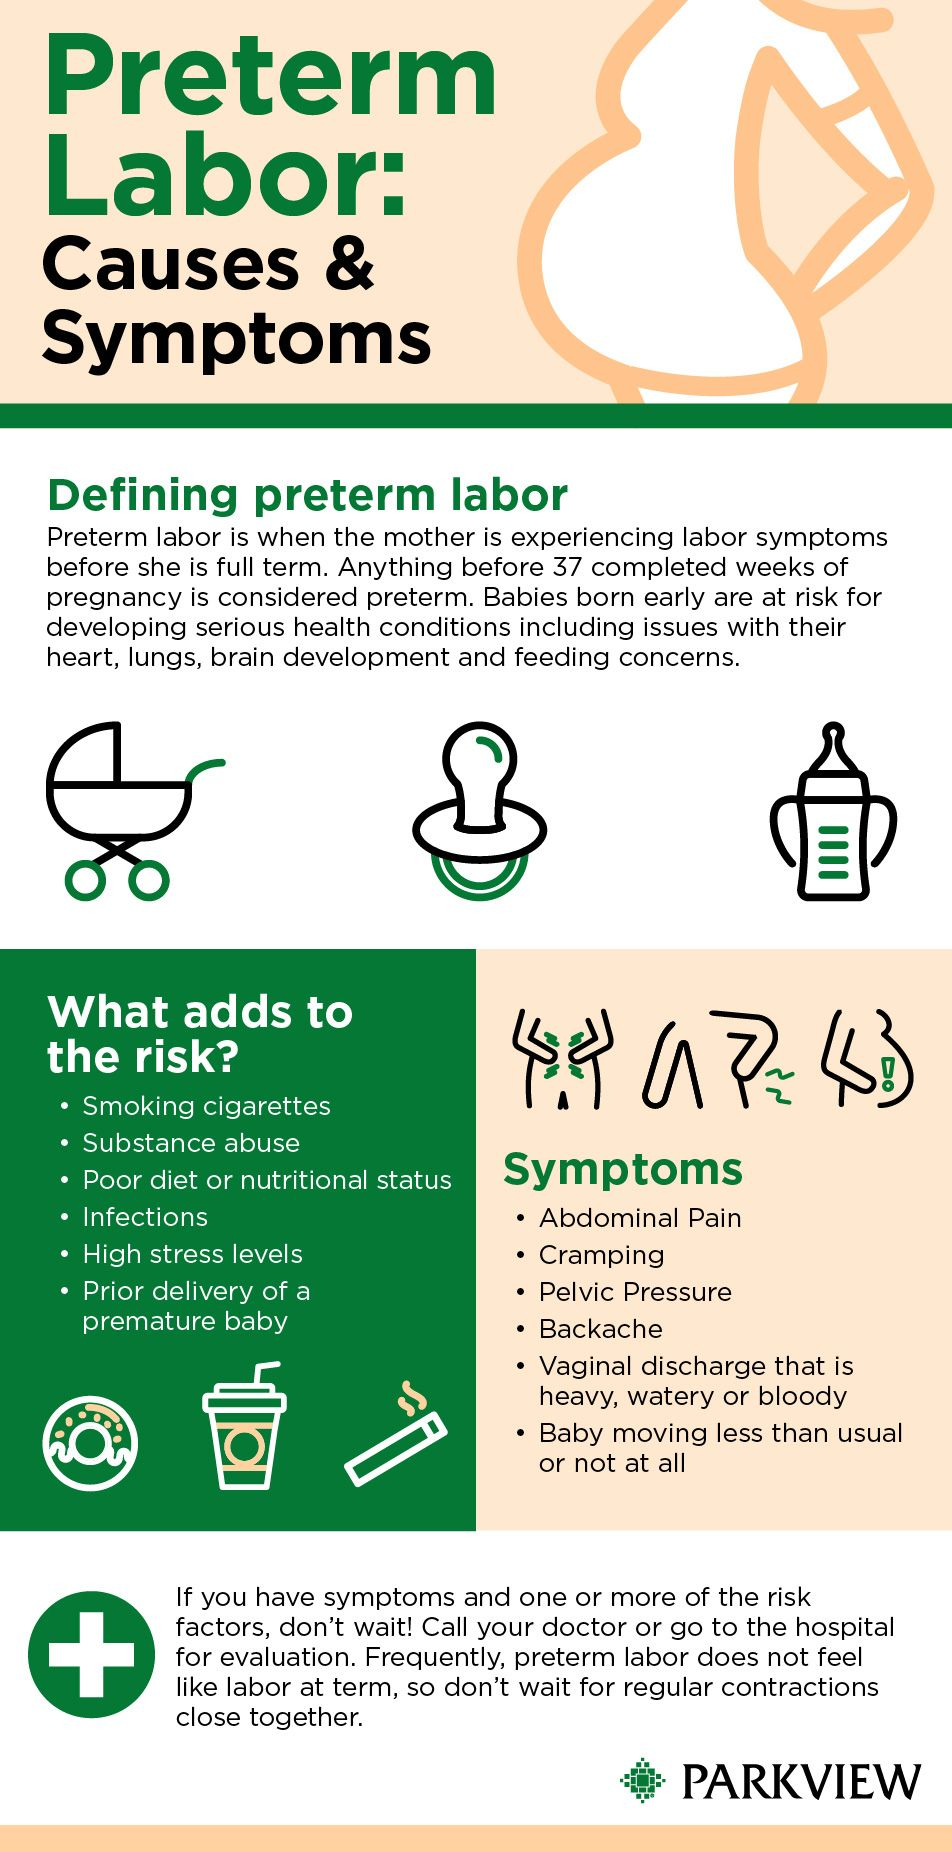 Important prevention signs and symptoms for pregnant mothers